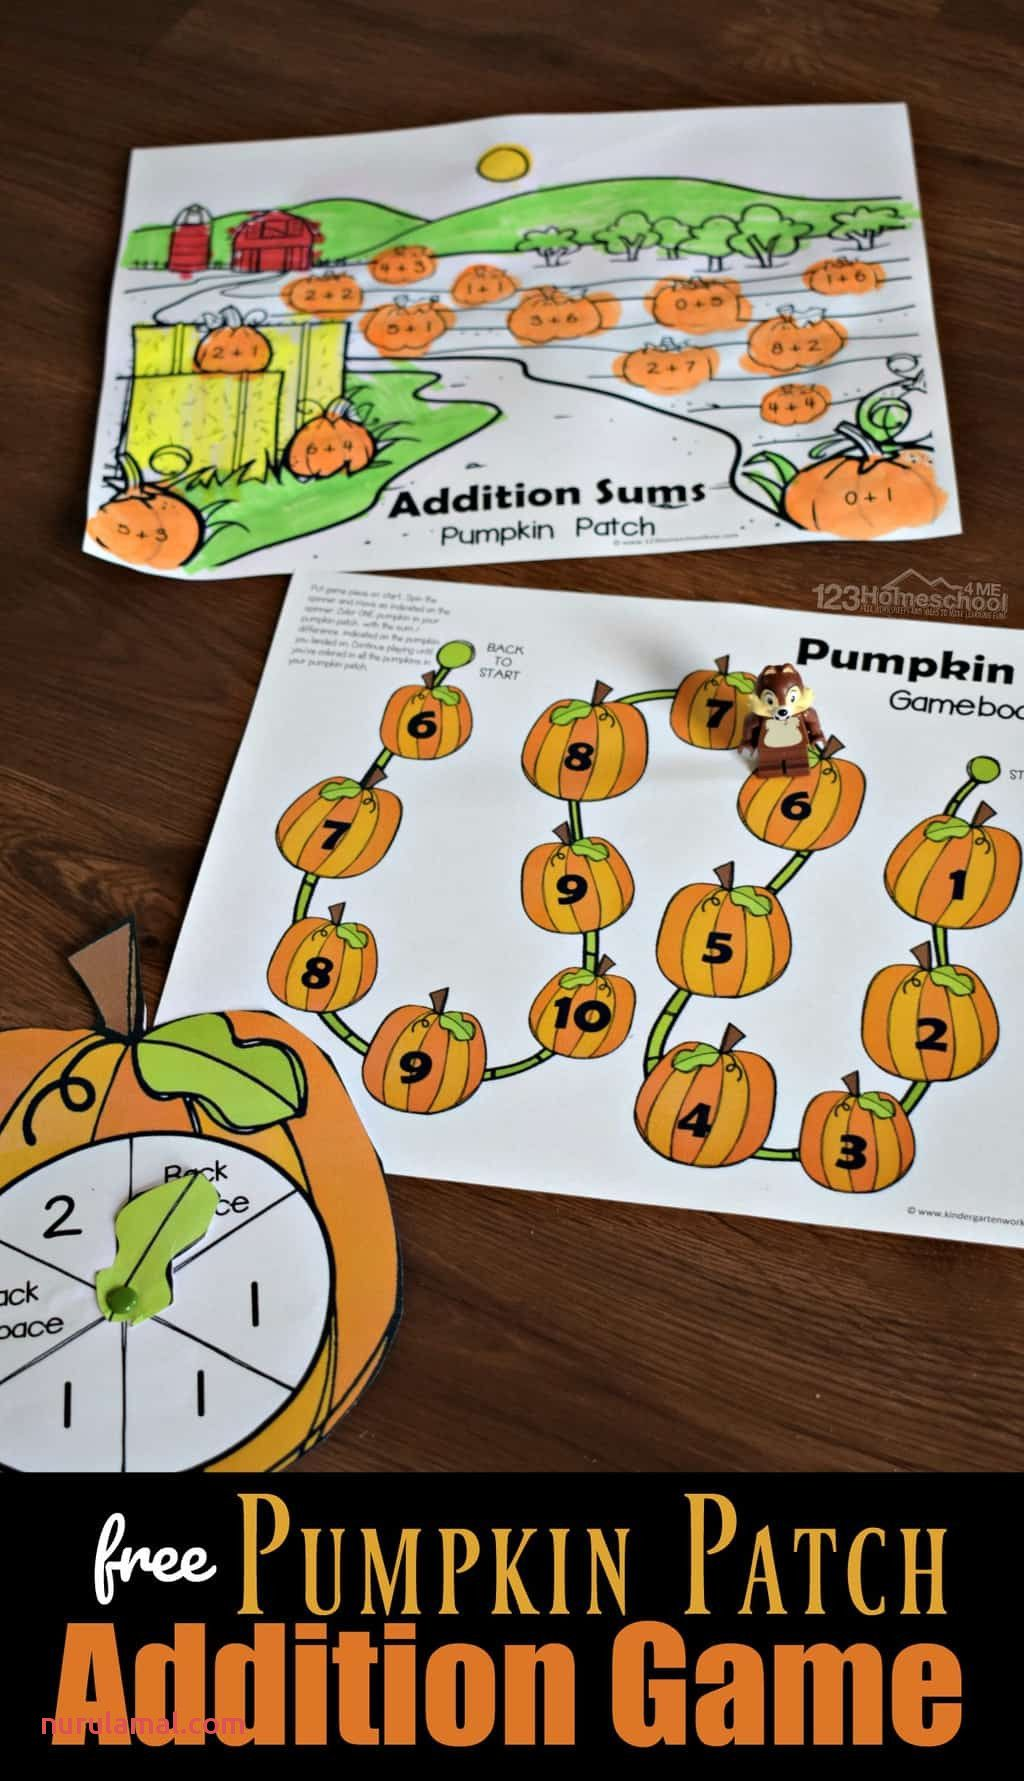 Free Pumpkin Patch Addition Game In